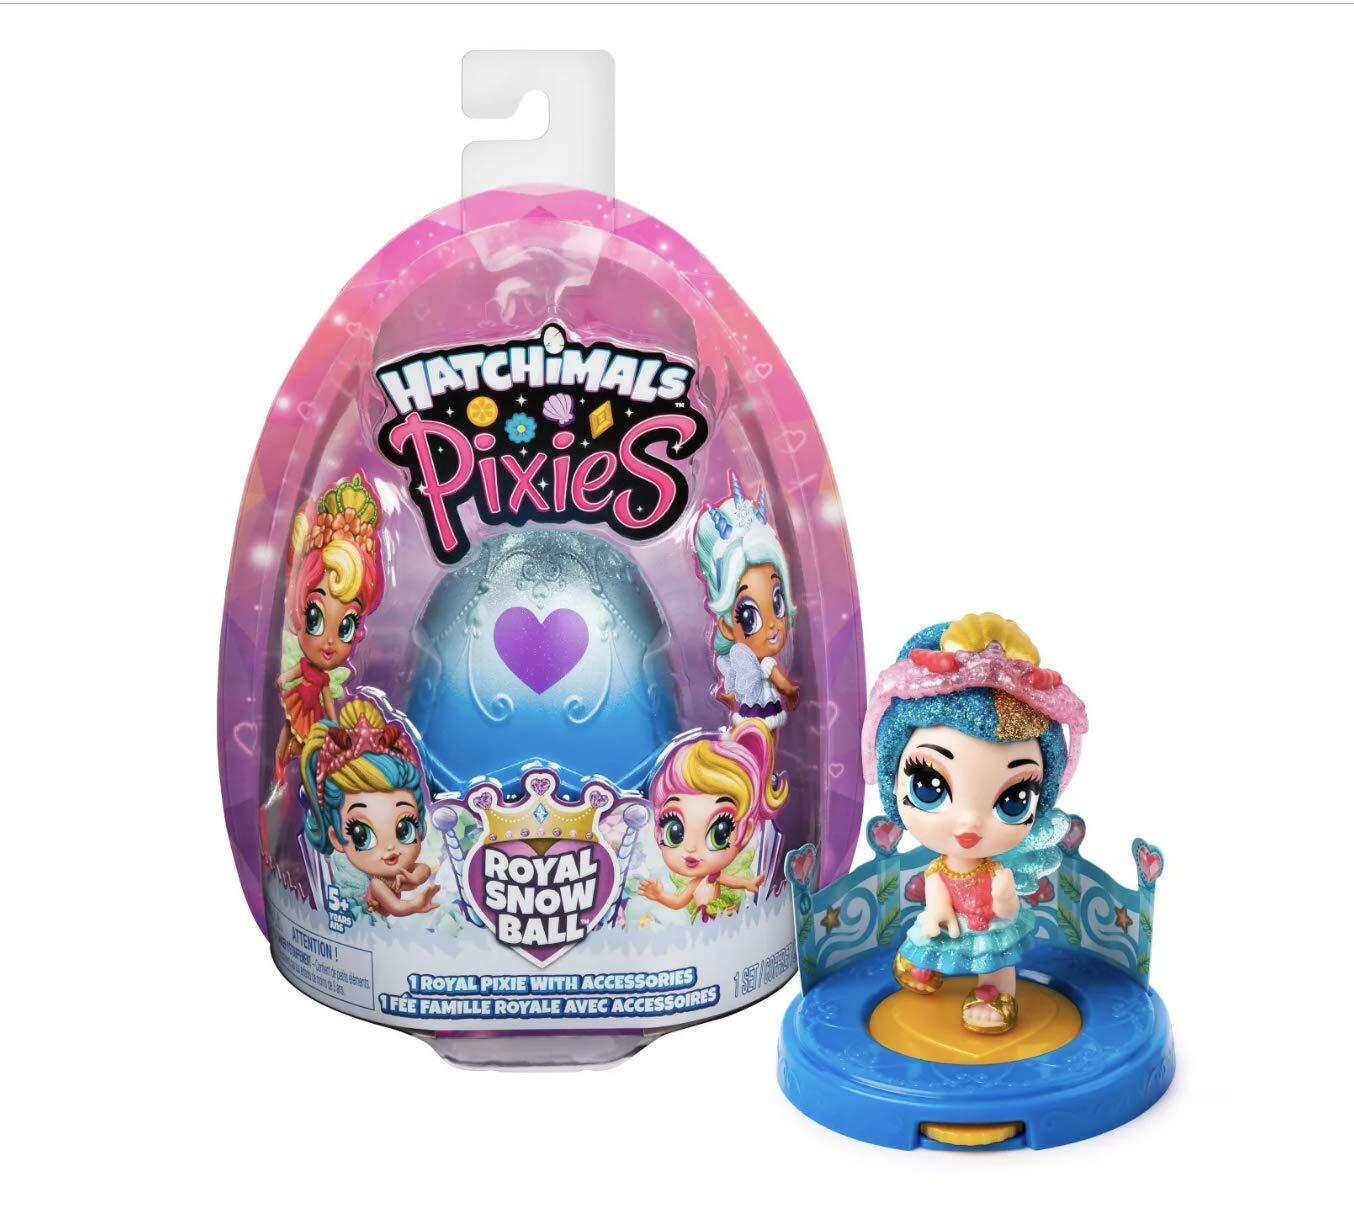 Hatchimals Pixies Royal SnowBall Mystery Egg Pink #P8711